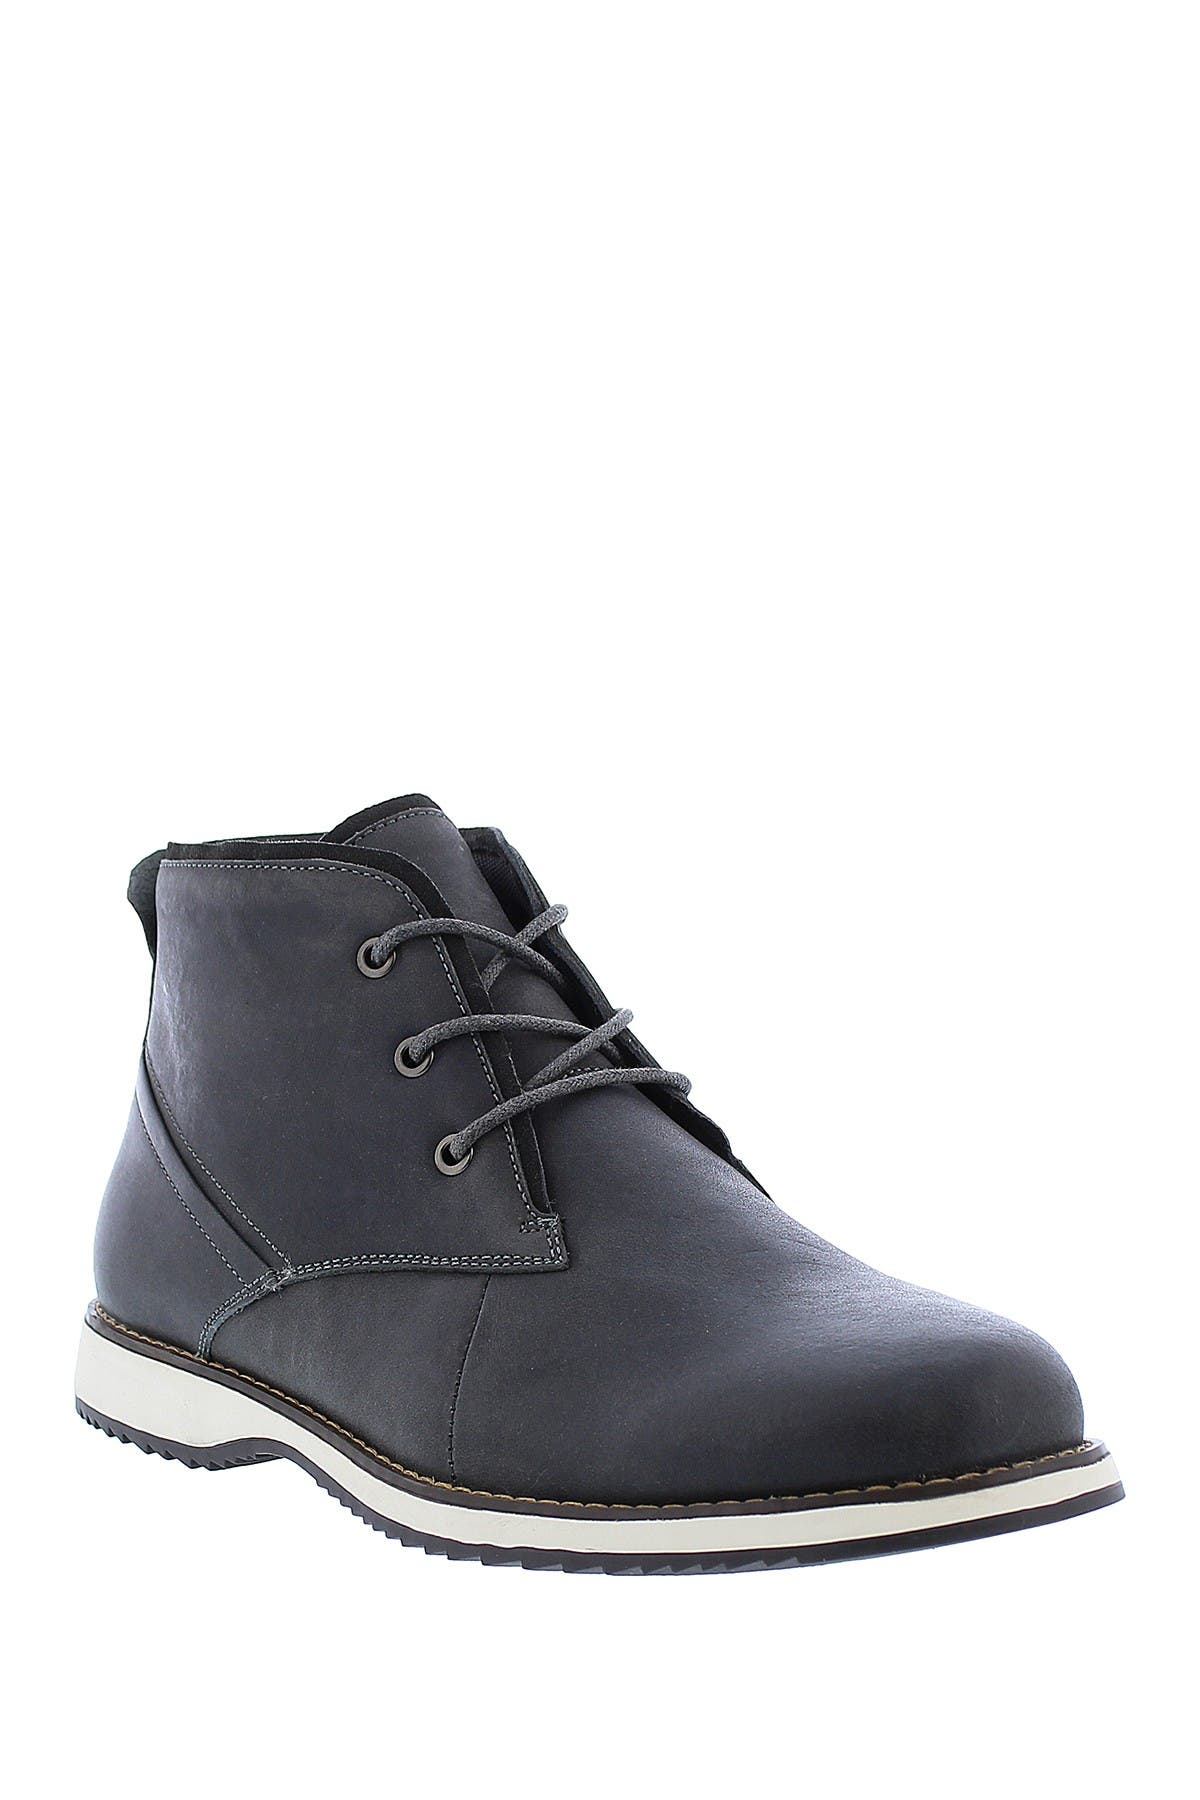 English Laundry Wilkinson Boot In Grey